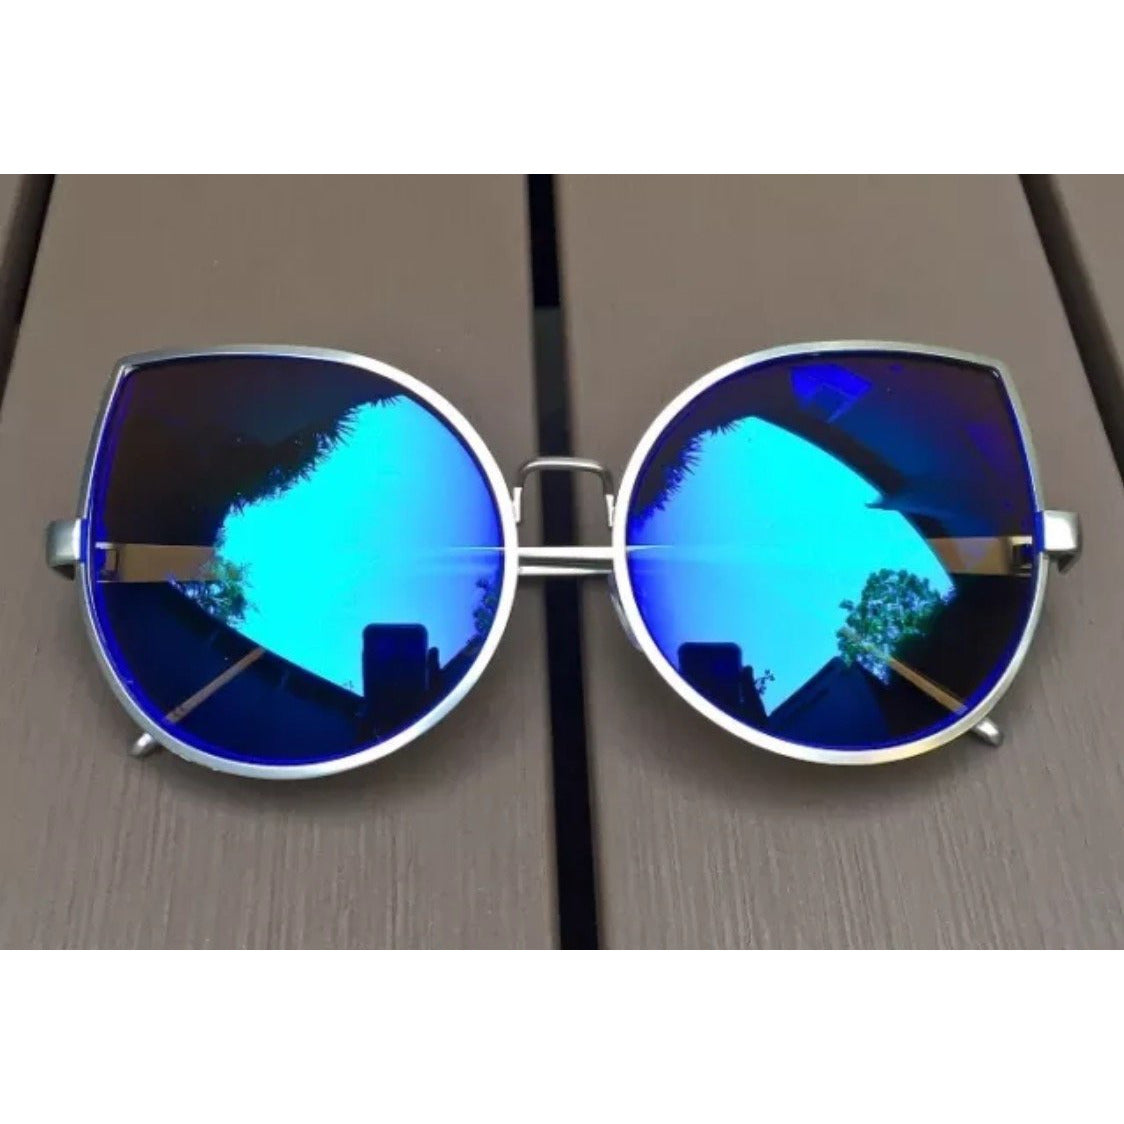 Teardrop Metallic Colored Lens Sunglasses